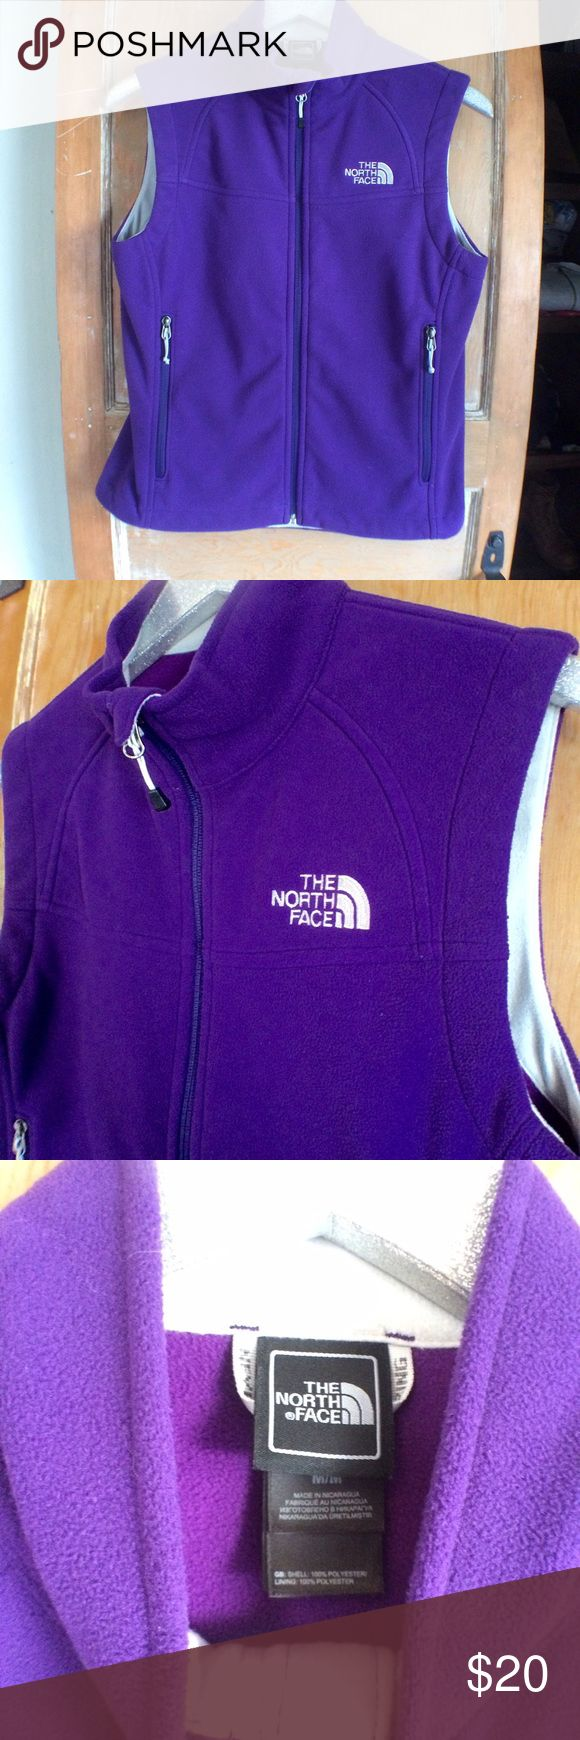 UW Husky colored xtra soft North Face fleece vest This super soft fleece vest is perfect for wearing to your next University of Washington game. Go huskies! Perfect purple and gray colors with extra soft fleece in great shape. Size M! 🌿🌞 The North Face Jackets & Coats Vests